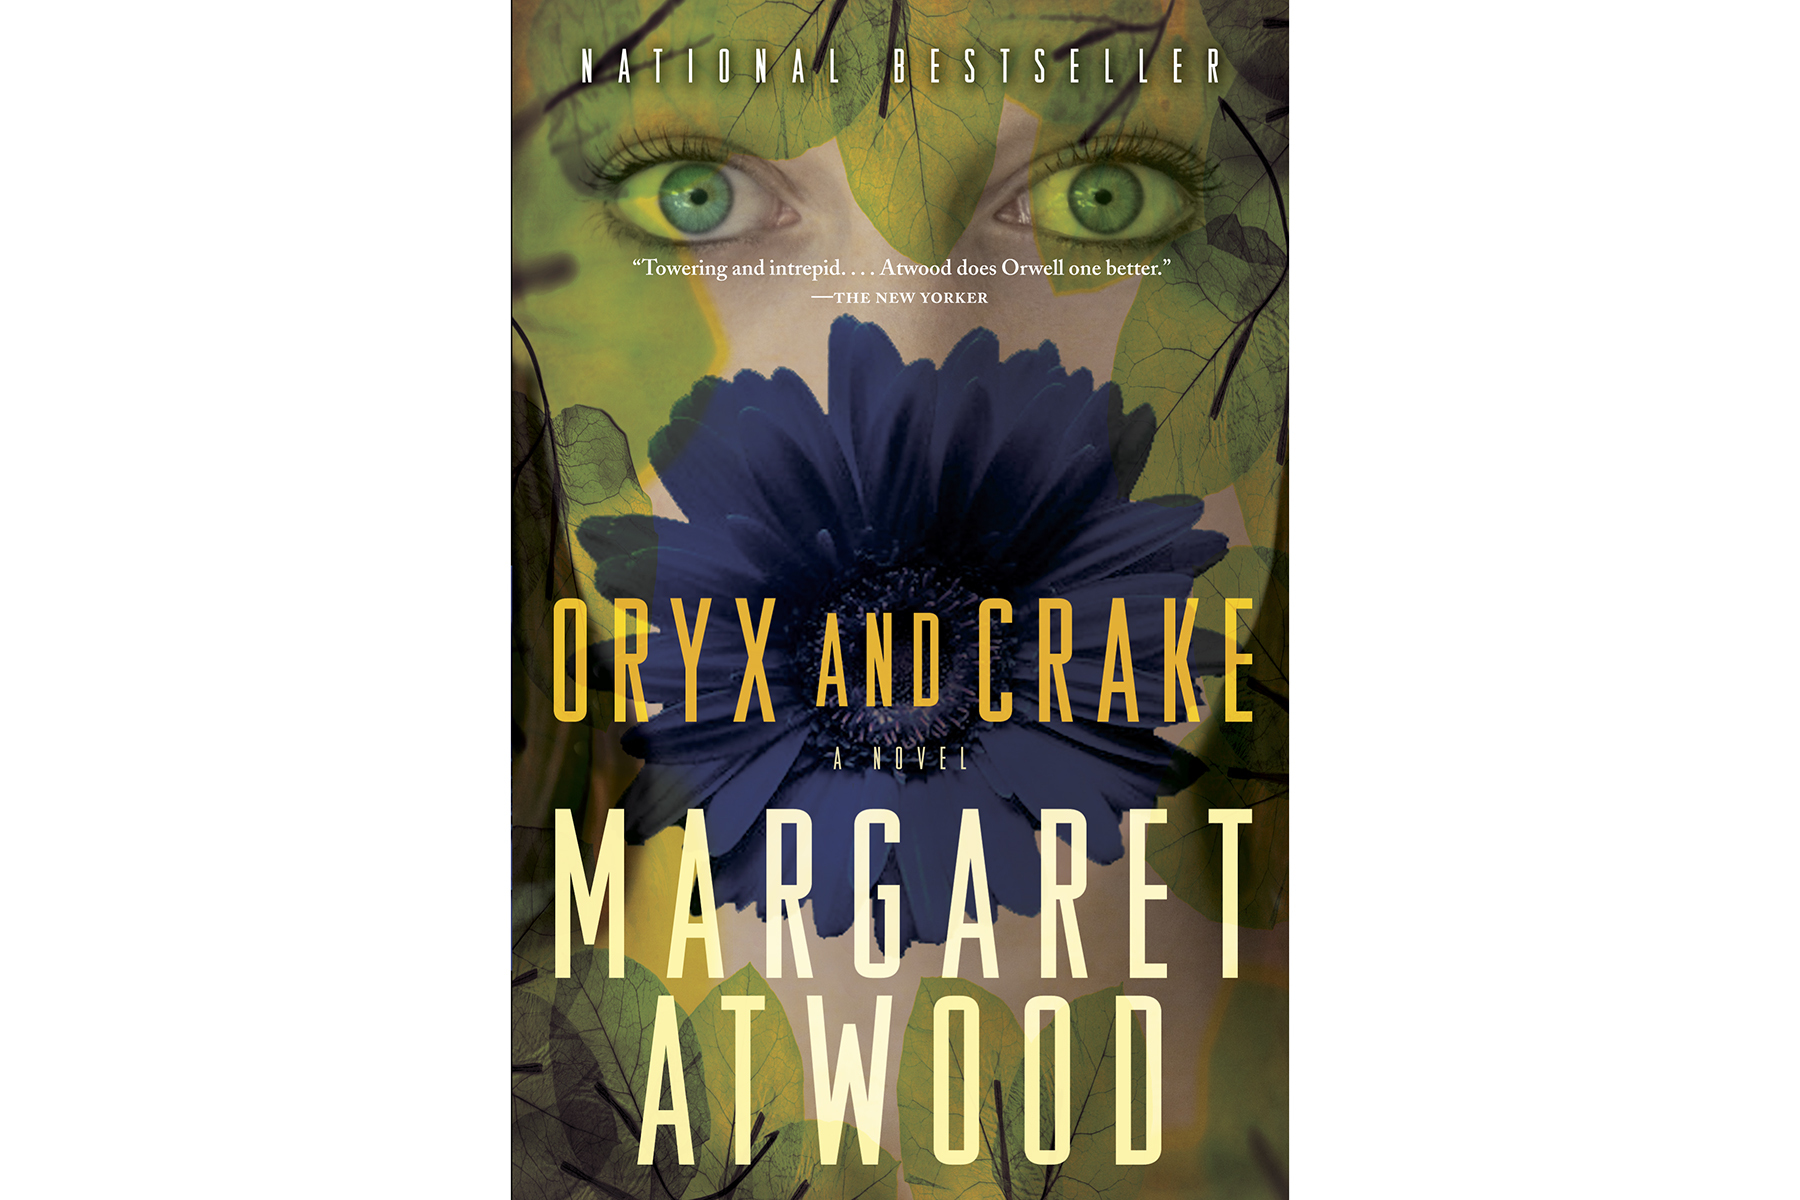 Oryx and Crake (Handmaid's Tale)